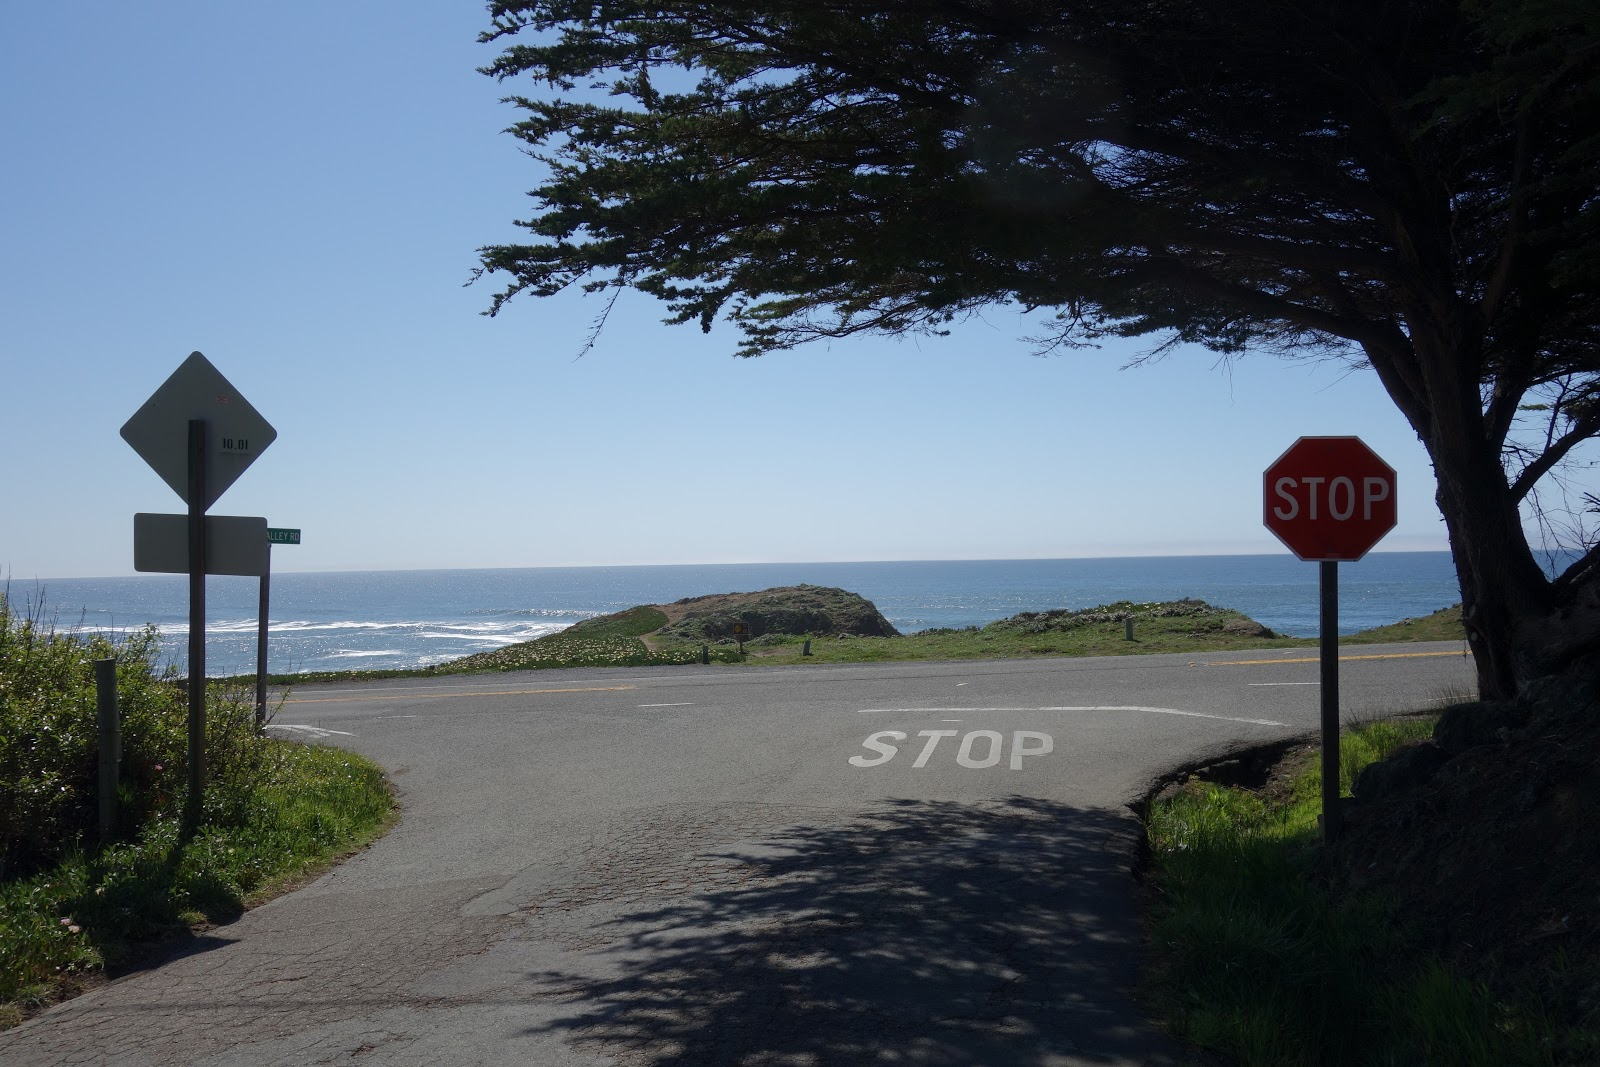 Start of the Coleman Valley Road climb by bike view west to Pacific Ocean, Hwy 1 and road signs.